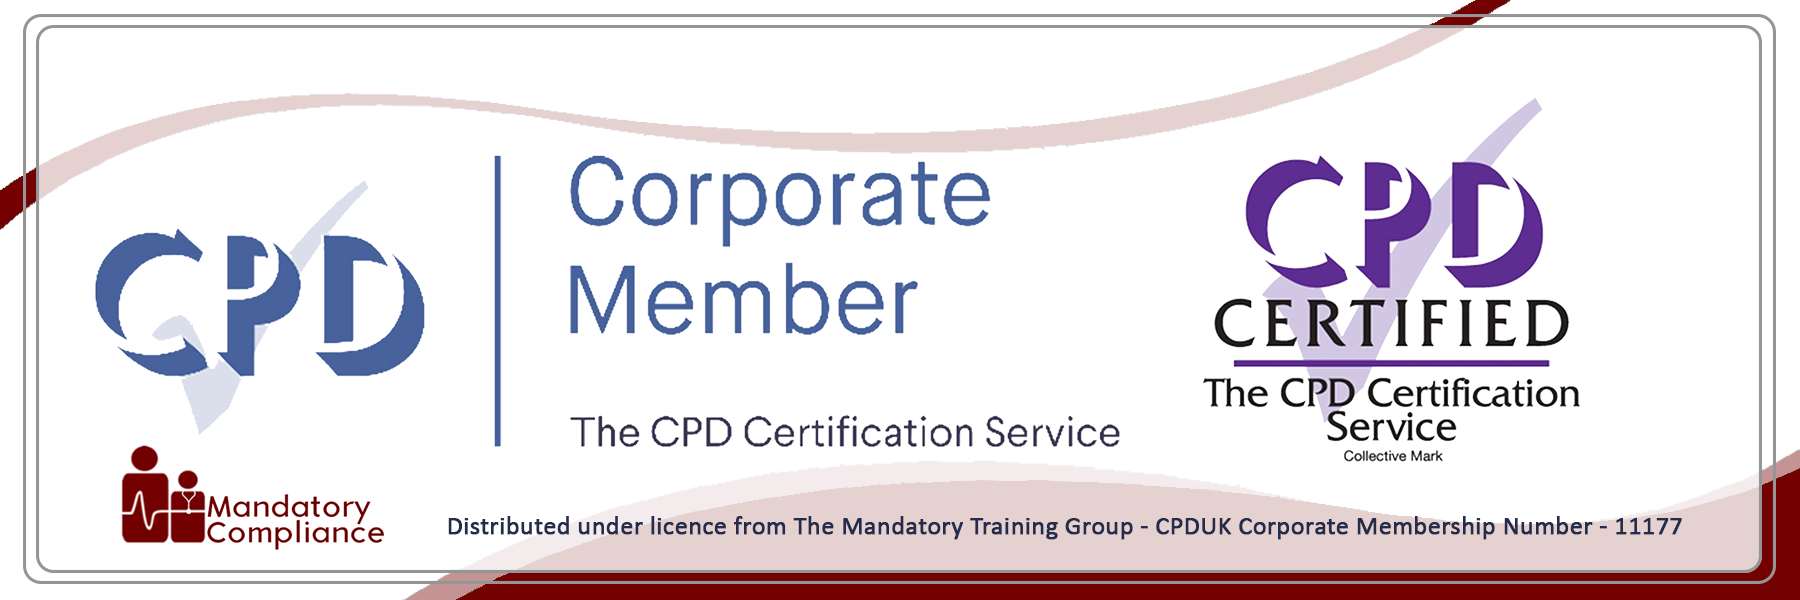 Equality, Diversity and Human Rights - Online Training Course - CPD Accredited - Mandatory Compliance UK -